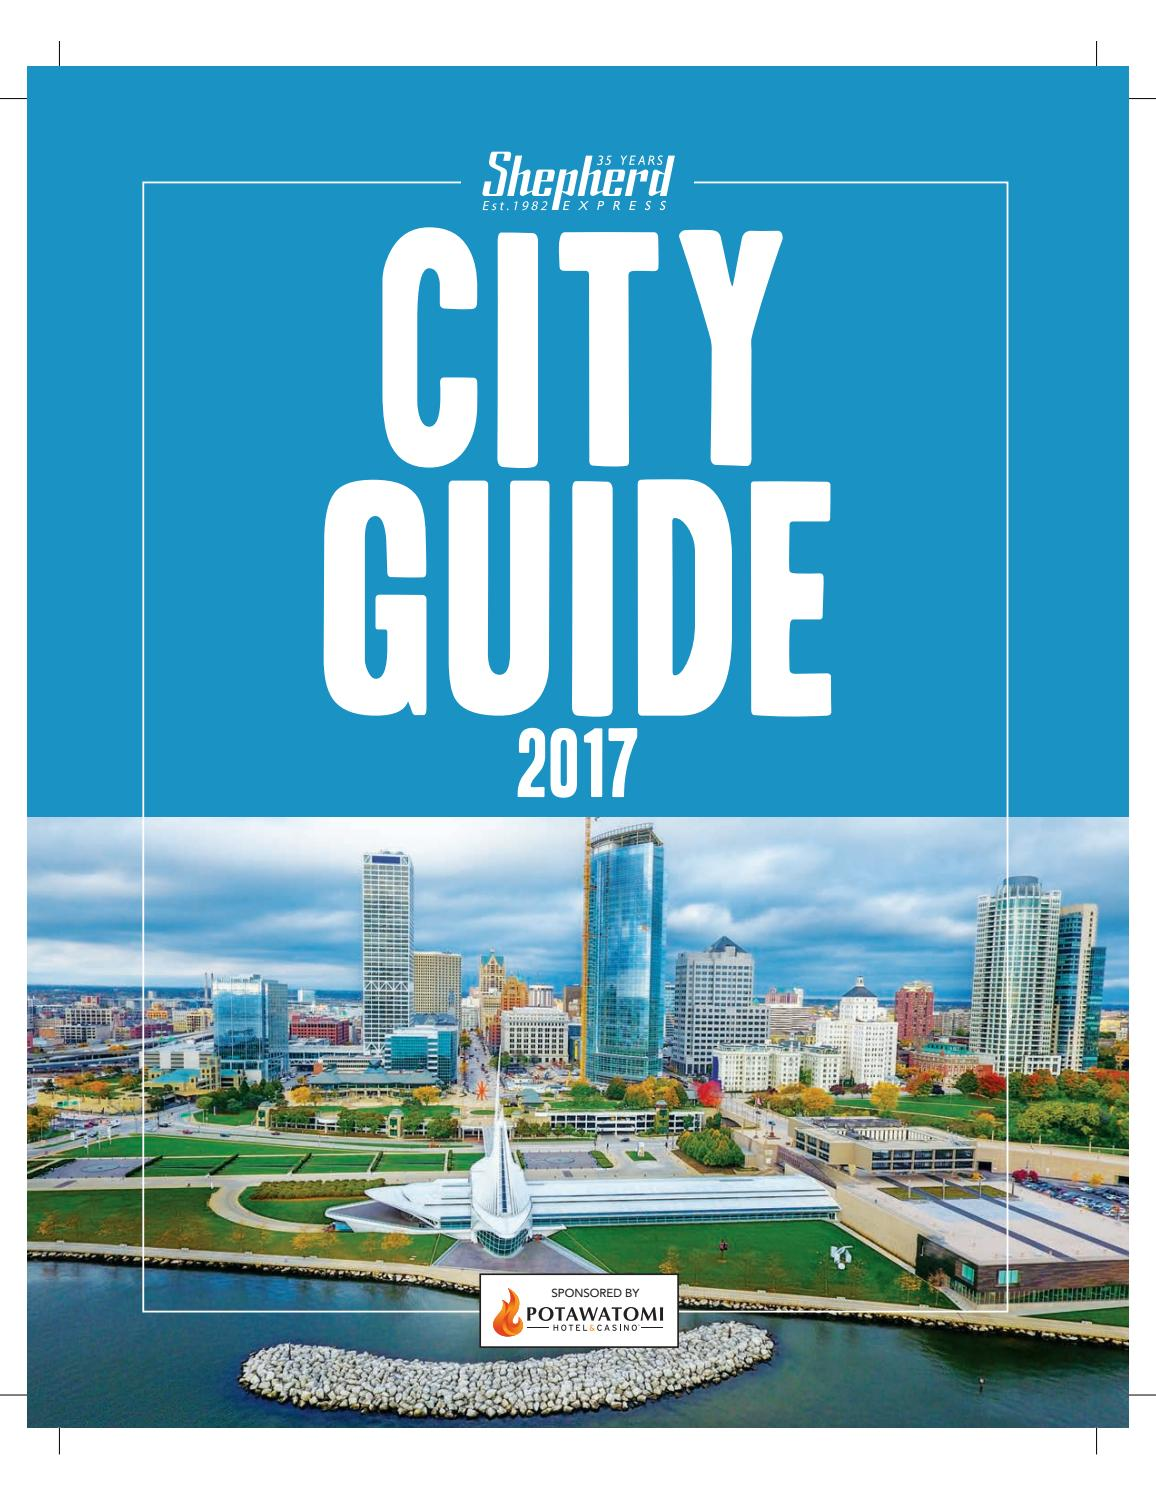 City Guide 2017 by Shepherd Express - issuu